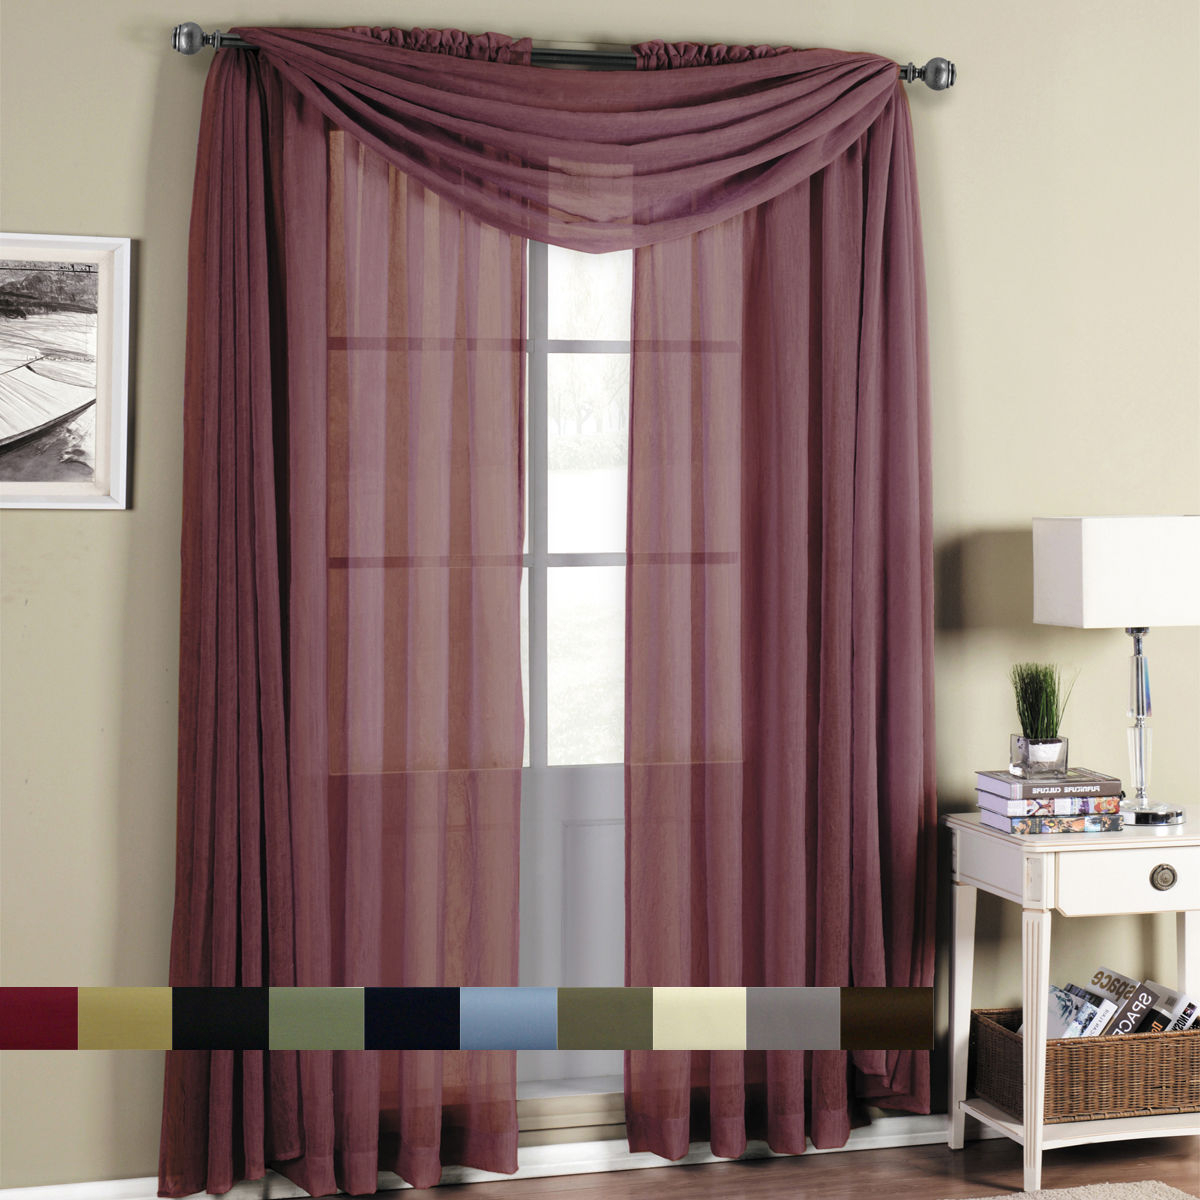 Abri Rod Pocket Crushed Sheer Window Curtain Panels Or Scarf, Beautiful Decor Intended For Famous Infinity Sheer Rod Pocket Curtain Panels (View 10 of 20)